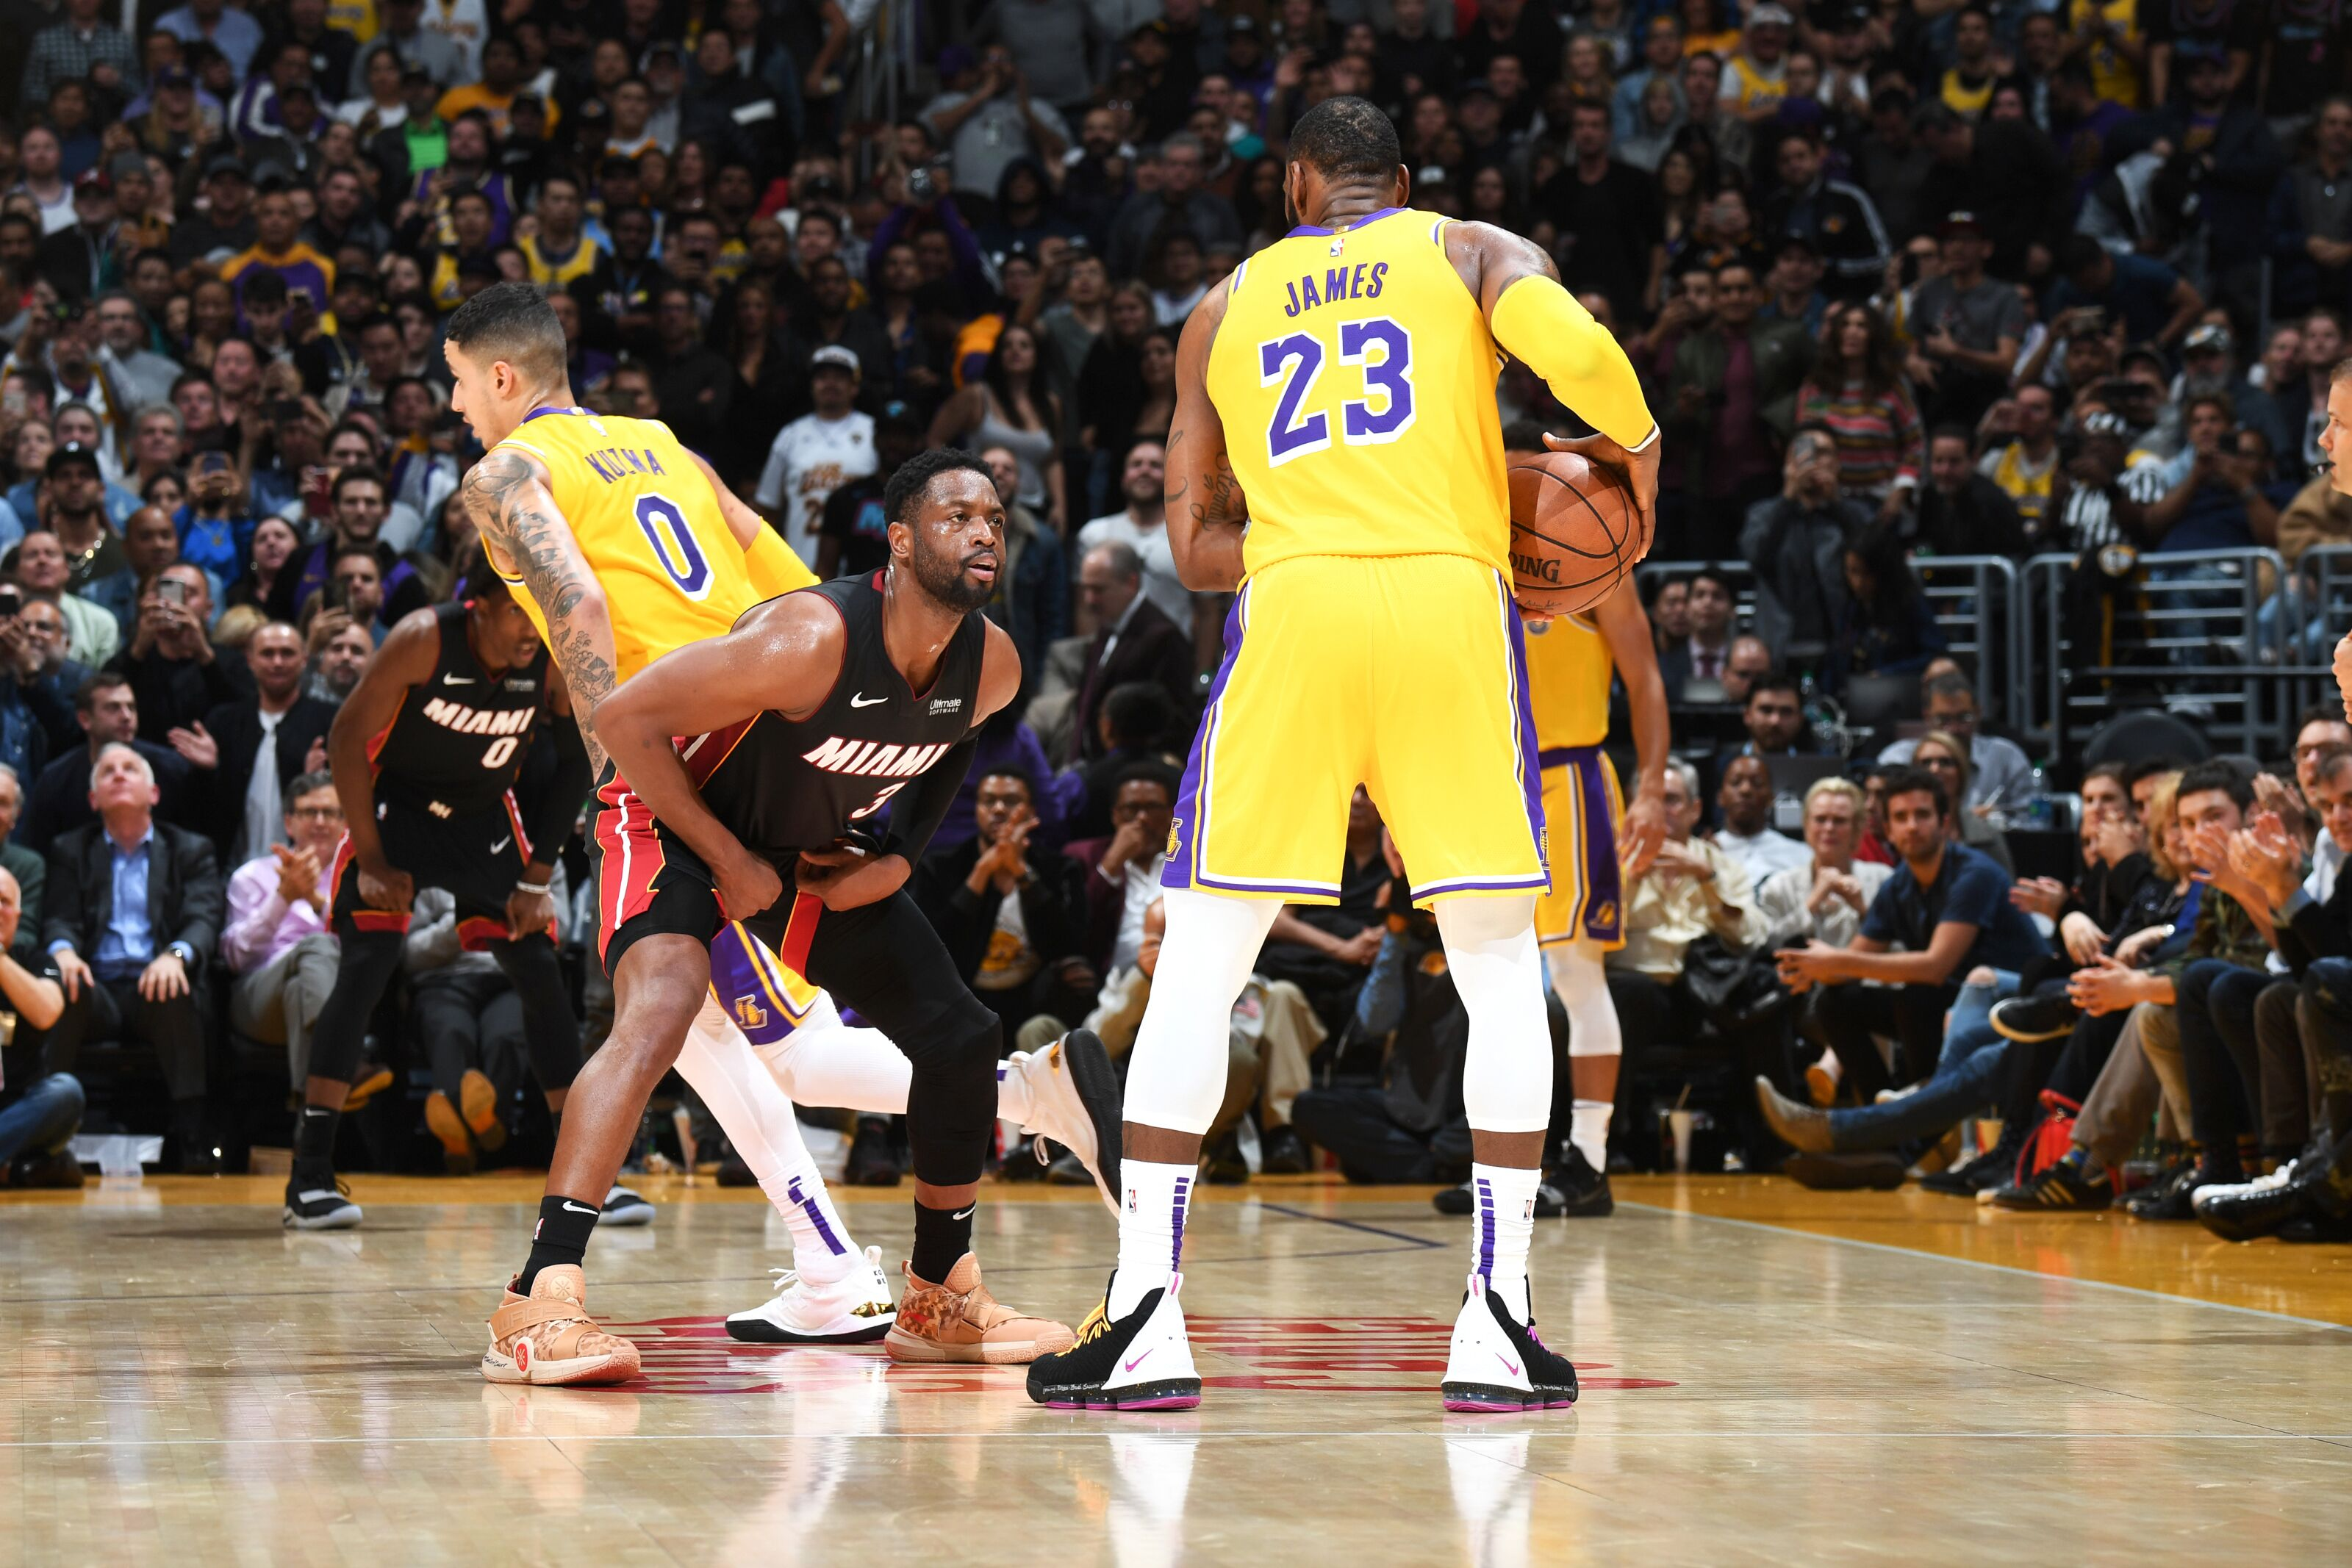 a28cfee11832 Los Angeles Lakers spoil Dwyane Wade swan song in Staples Center